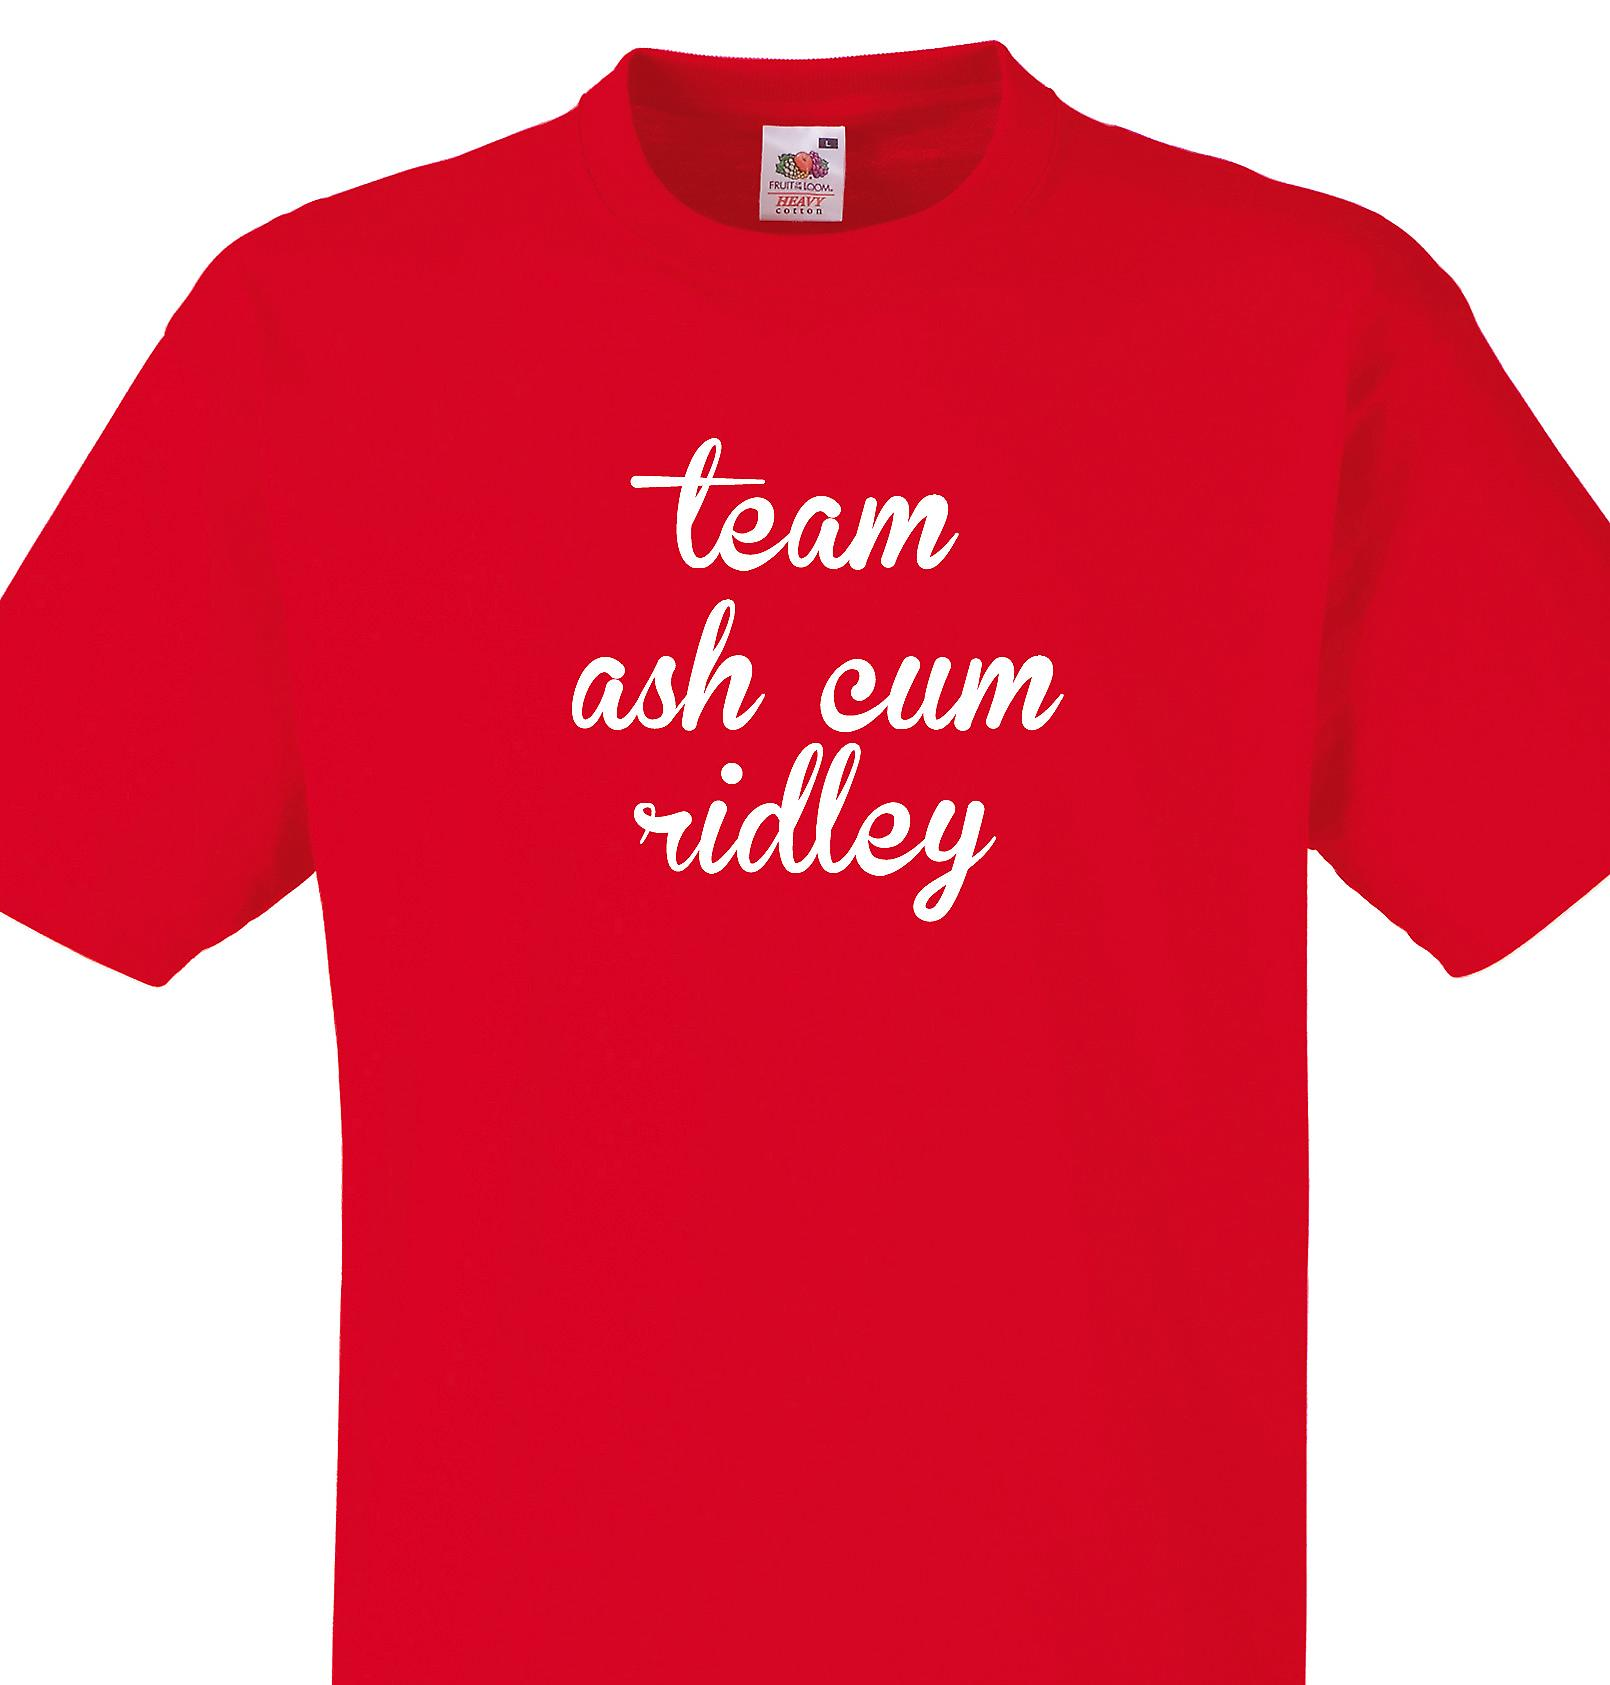 Team Ash cum ridley Red T shirt